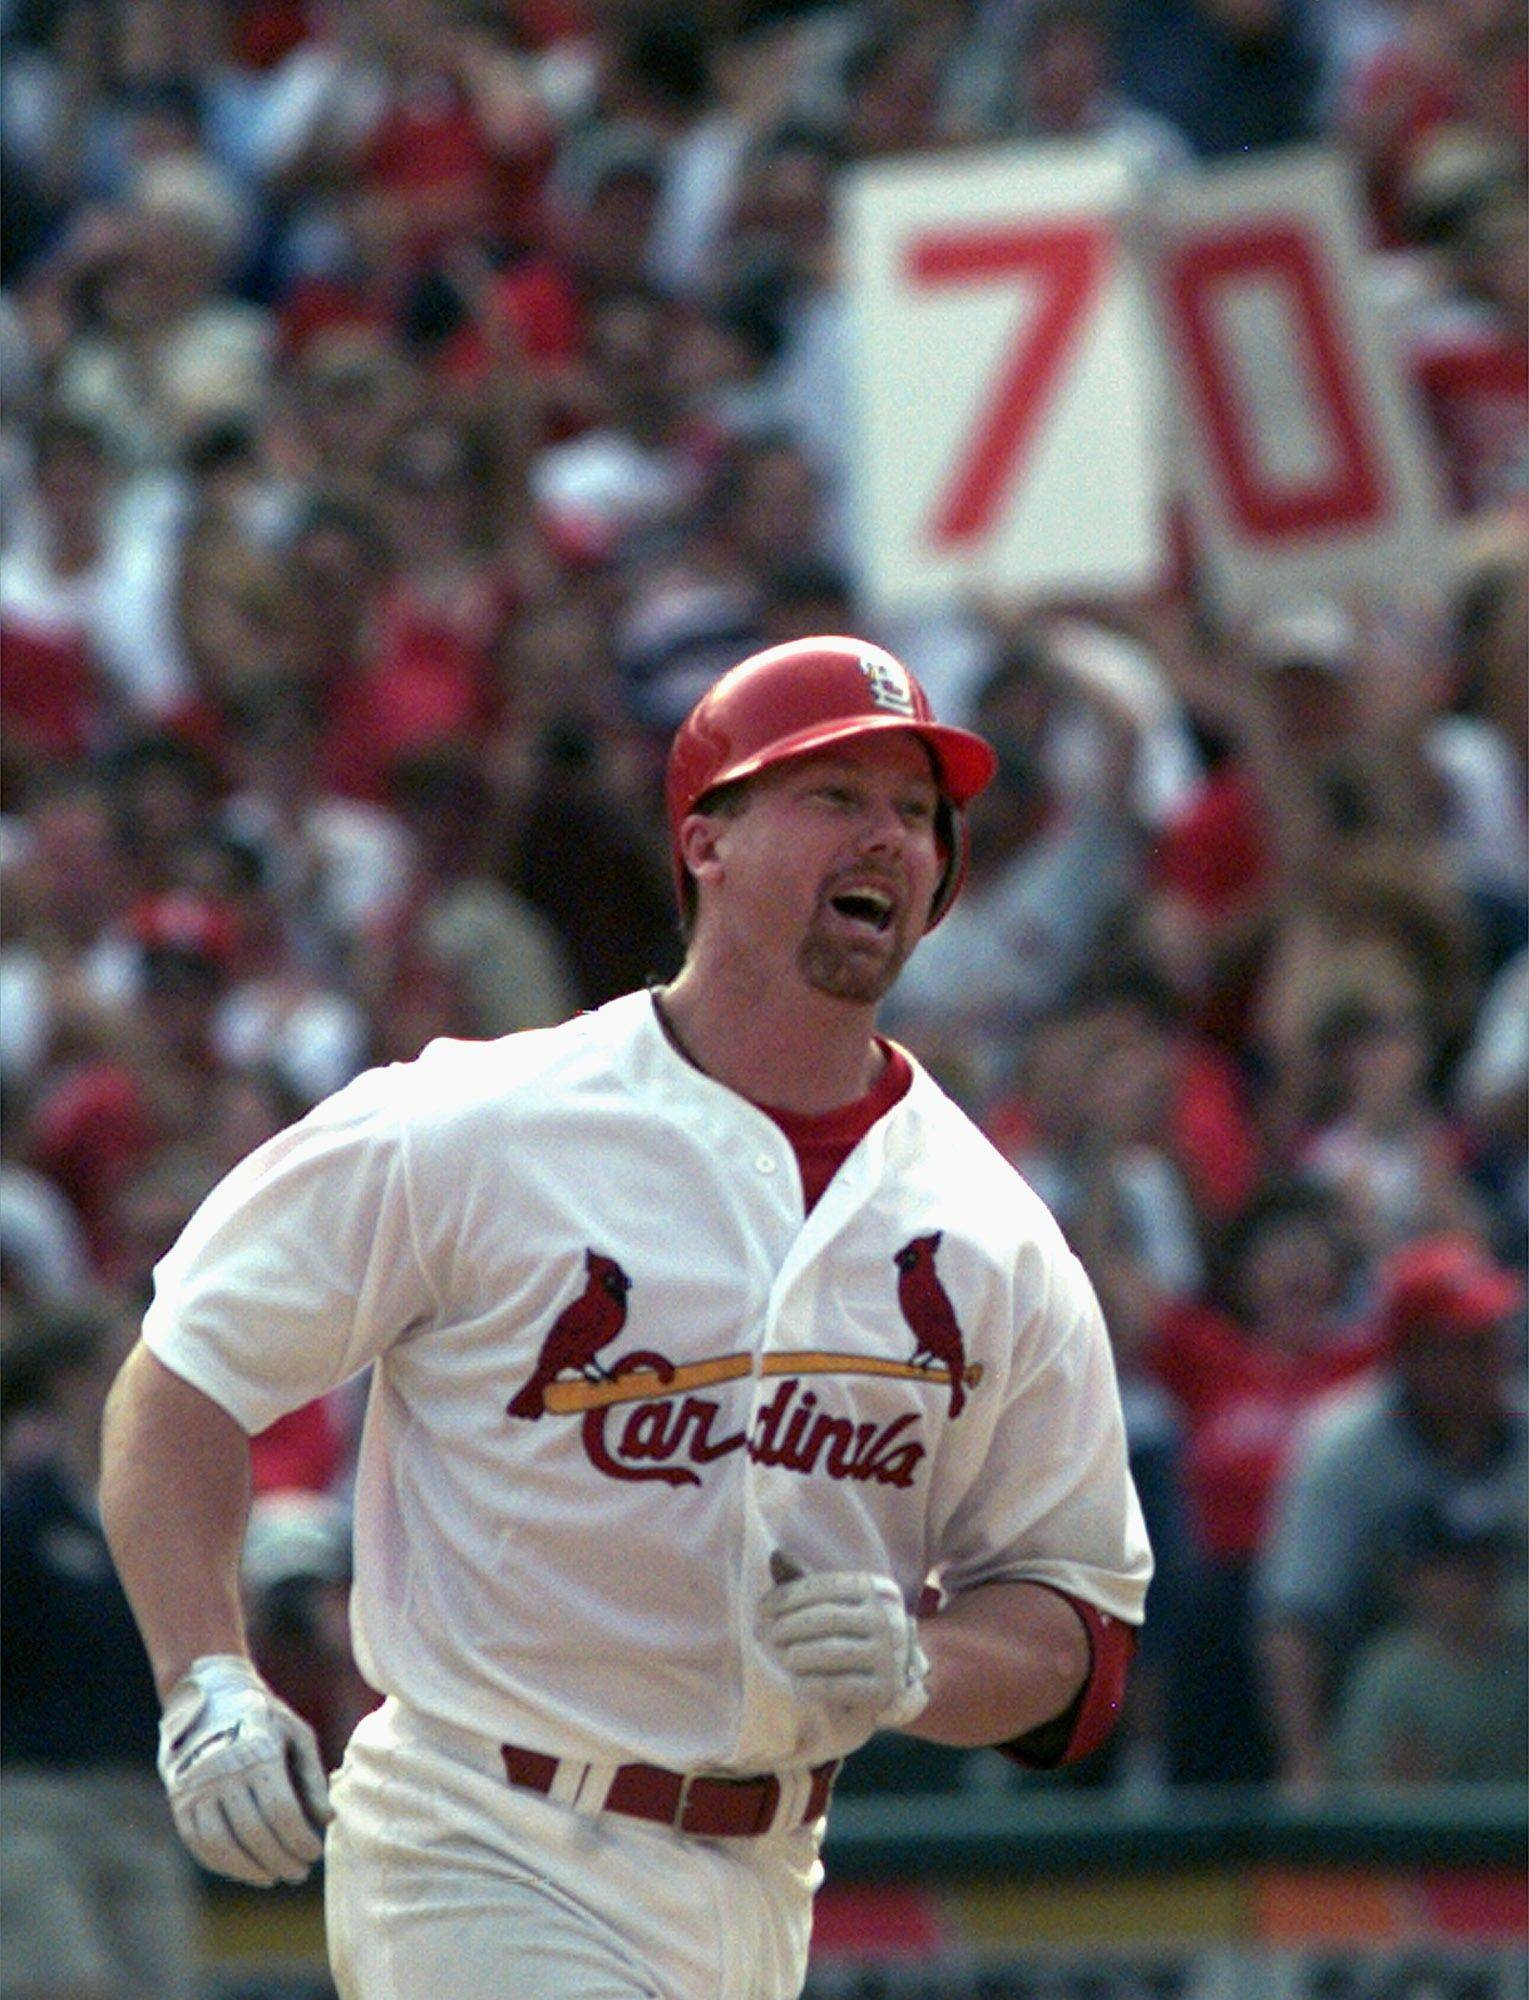 ** ADVANCE FOR WEEKEND EDITIONS, MARCH 19-20 - FILE - ** This Sept. 27, 1998, file photo shows St. Louis Cardinals slugger Mark McGwire smiling as he rounds the bases after hitting his 70th home run of the season in the seventh inning against Montreal Expos pitcher Carl Pavano, at Busch Stadium in St. Louis. The steroids-era whipping boy is undiminished among those who appreciate his historic season more than a dozen years ago.